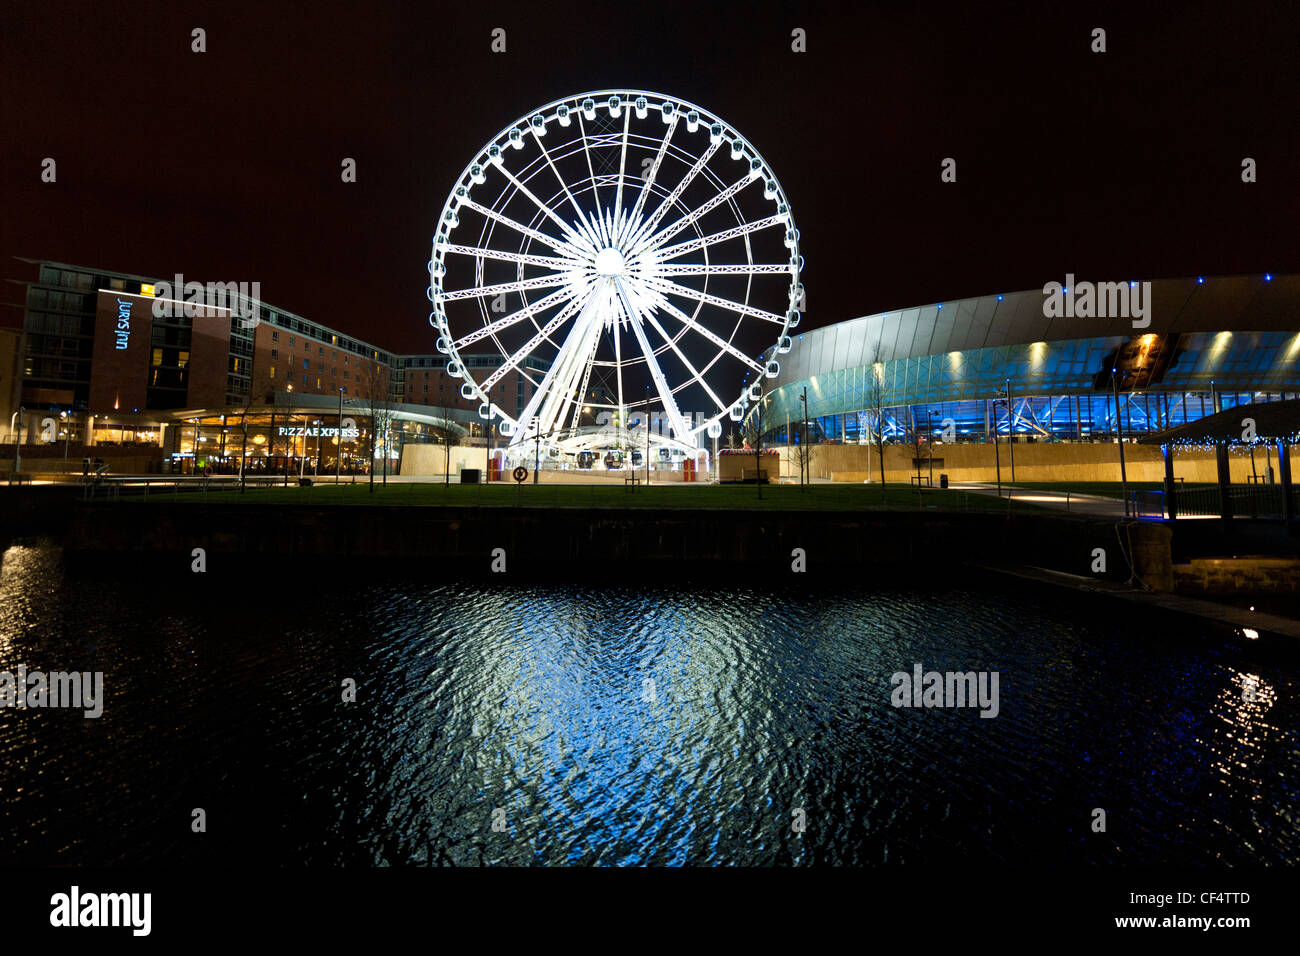 Night view of Echo Arena and Echo Liverpool Wheel reflected in the waters of Dukes Dock. - Stock Image